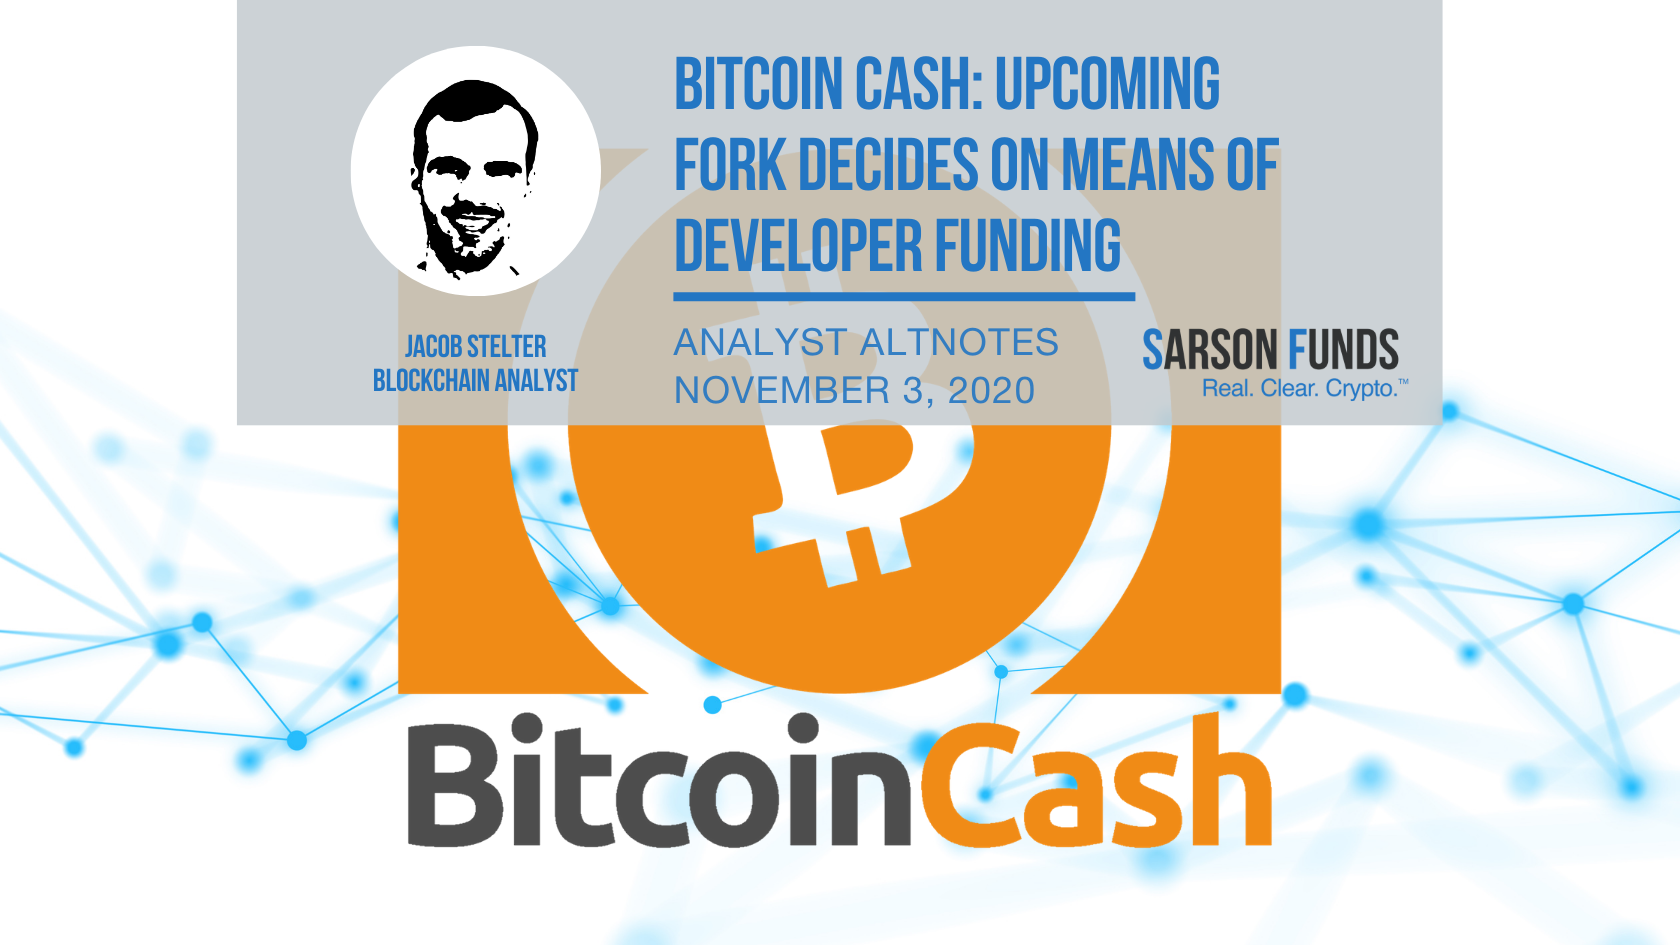 Bitcoin Cash Fork Decided On Opinions About Developer Funding